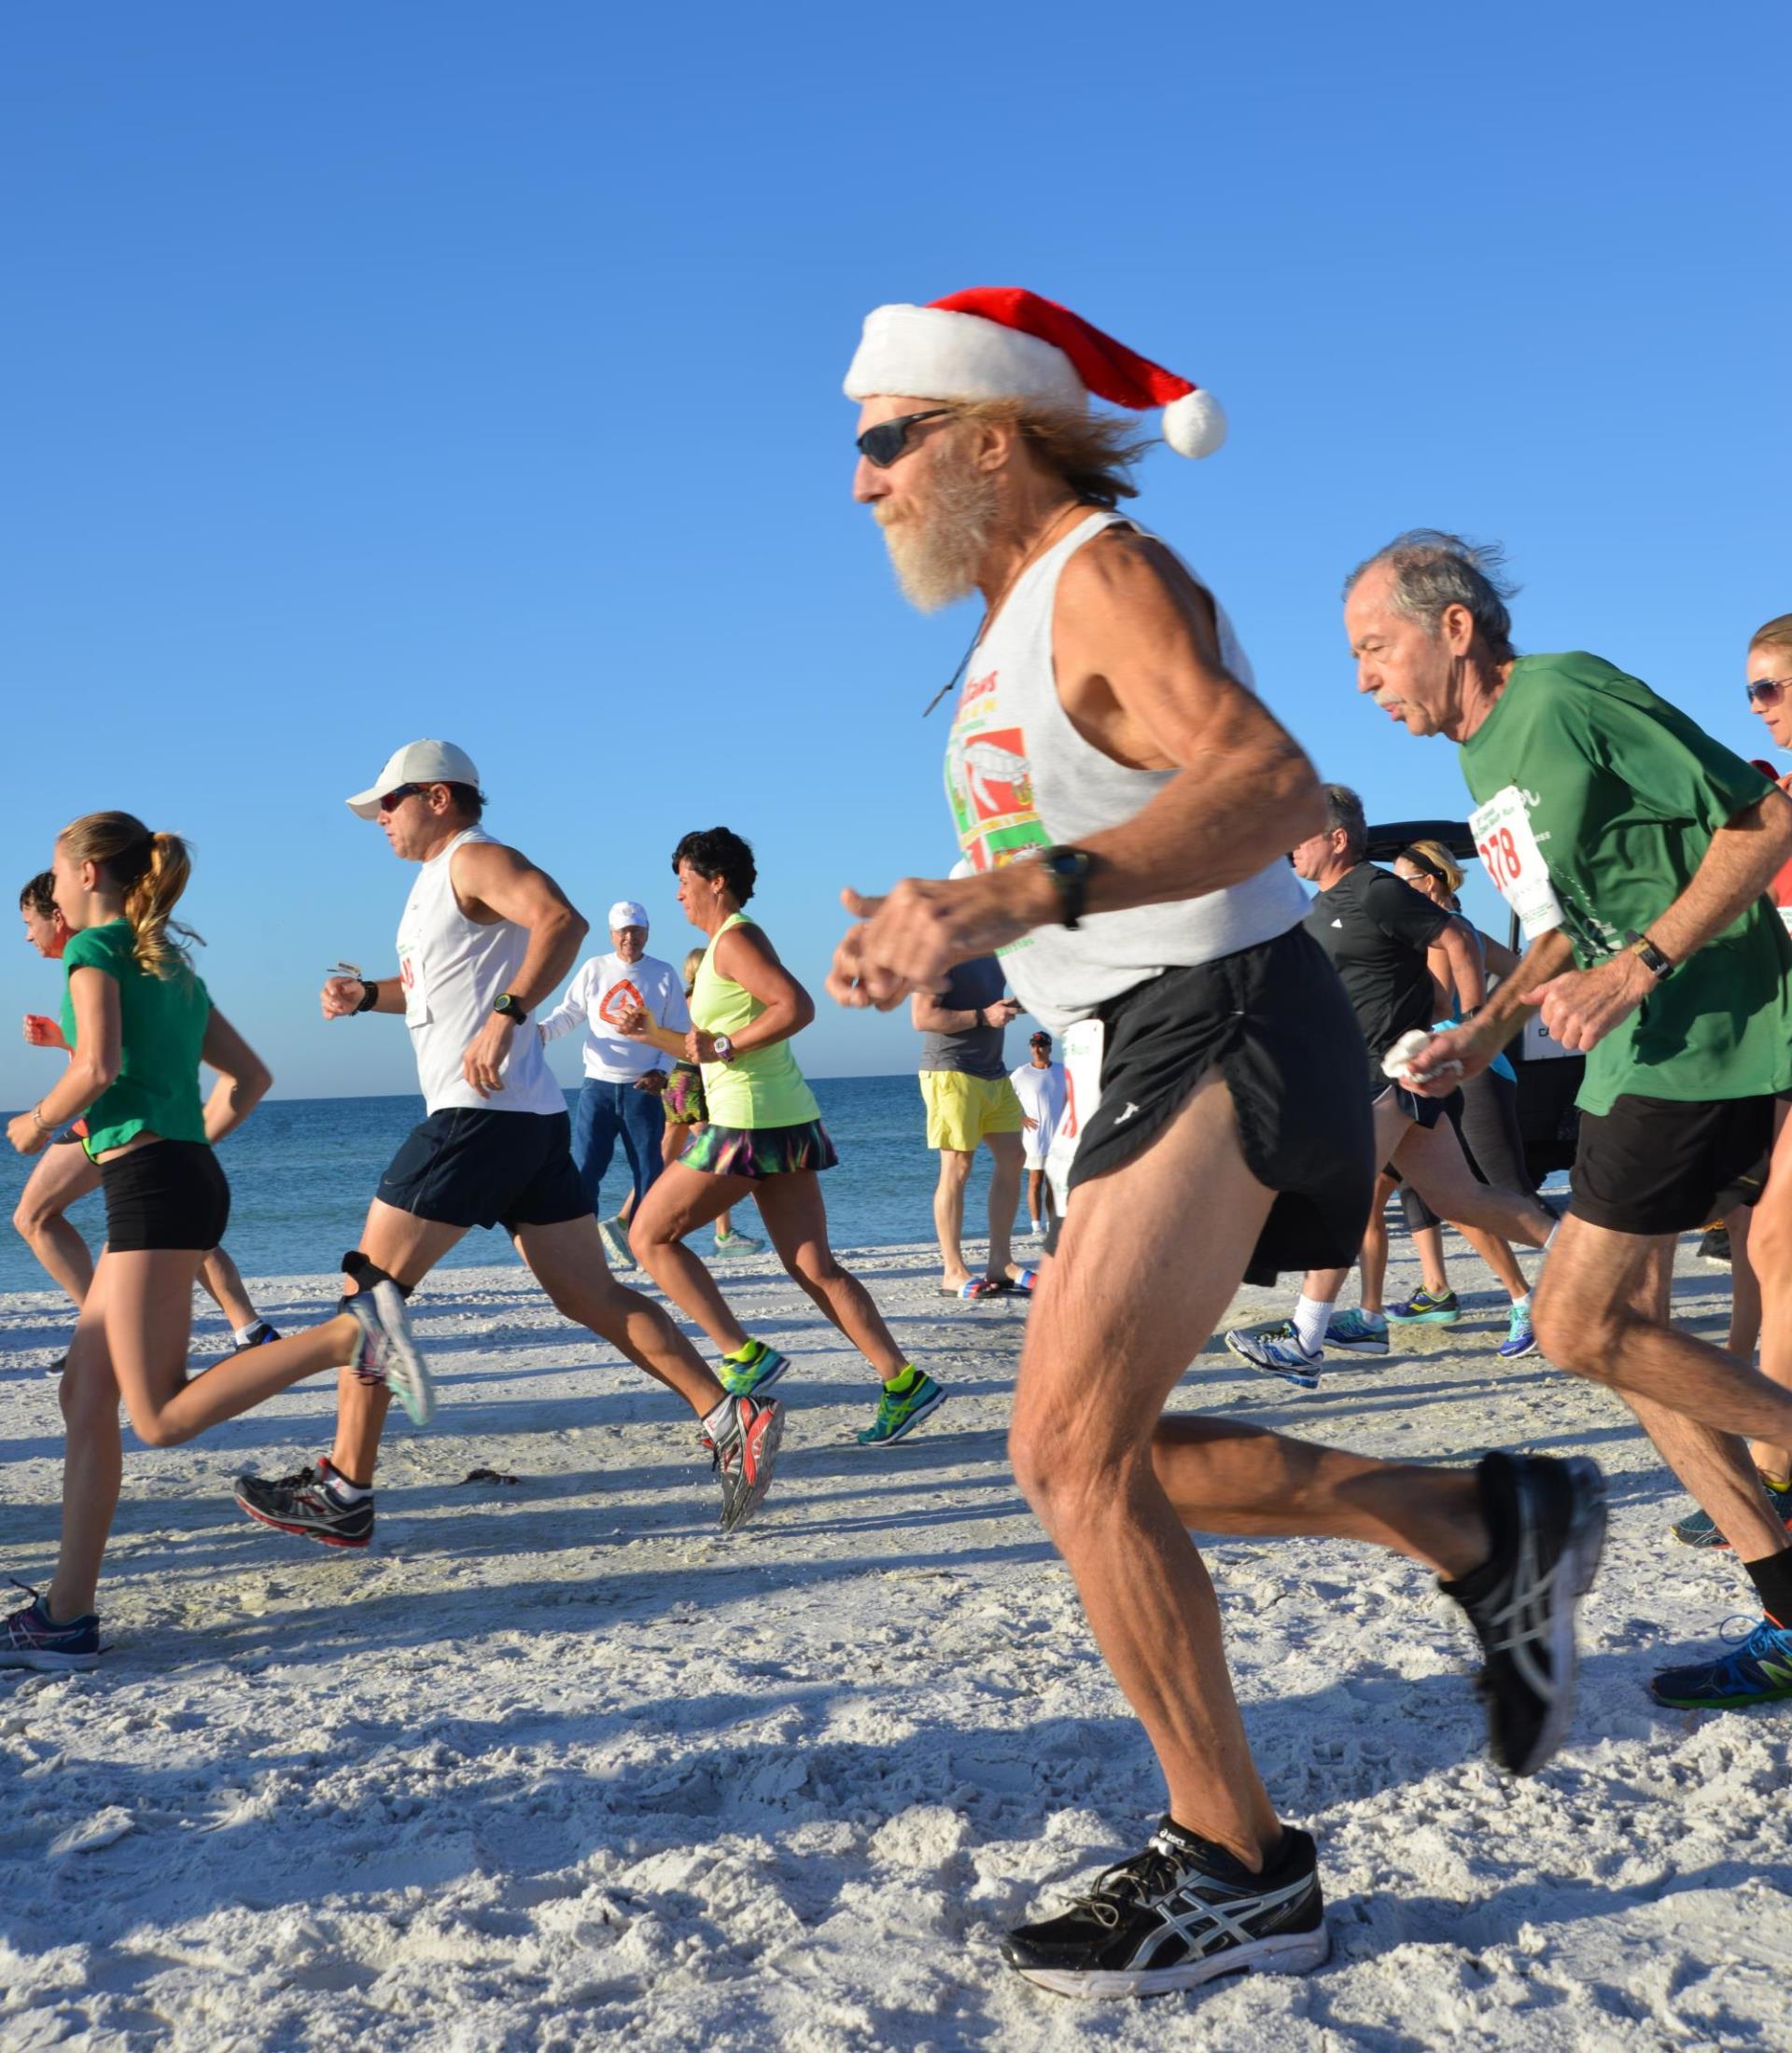 Runners enjoying the beach in December during the Sandy Claws Beach Run.